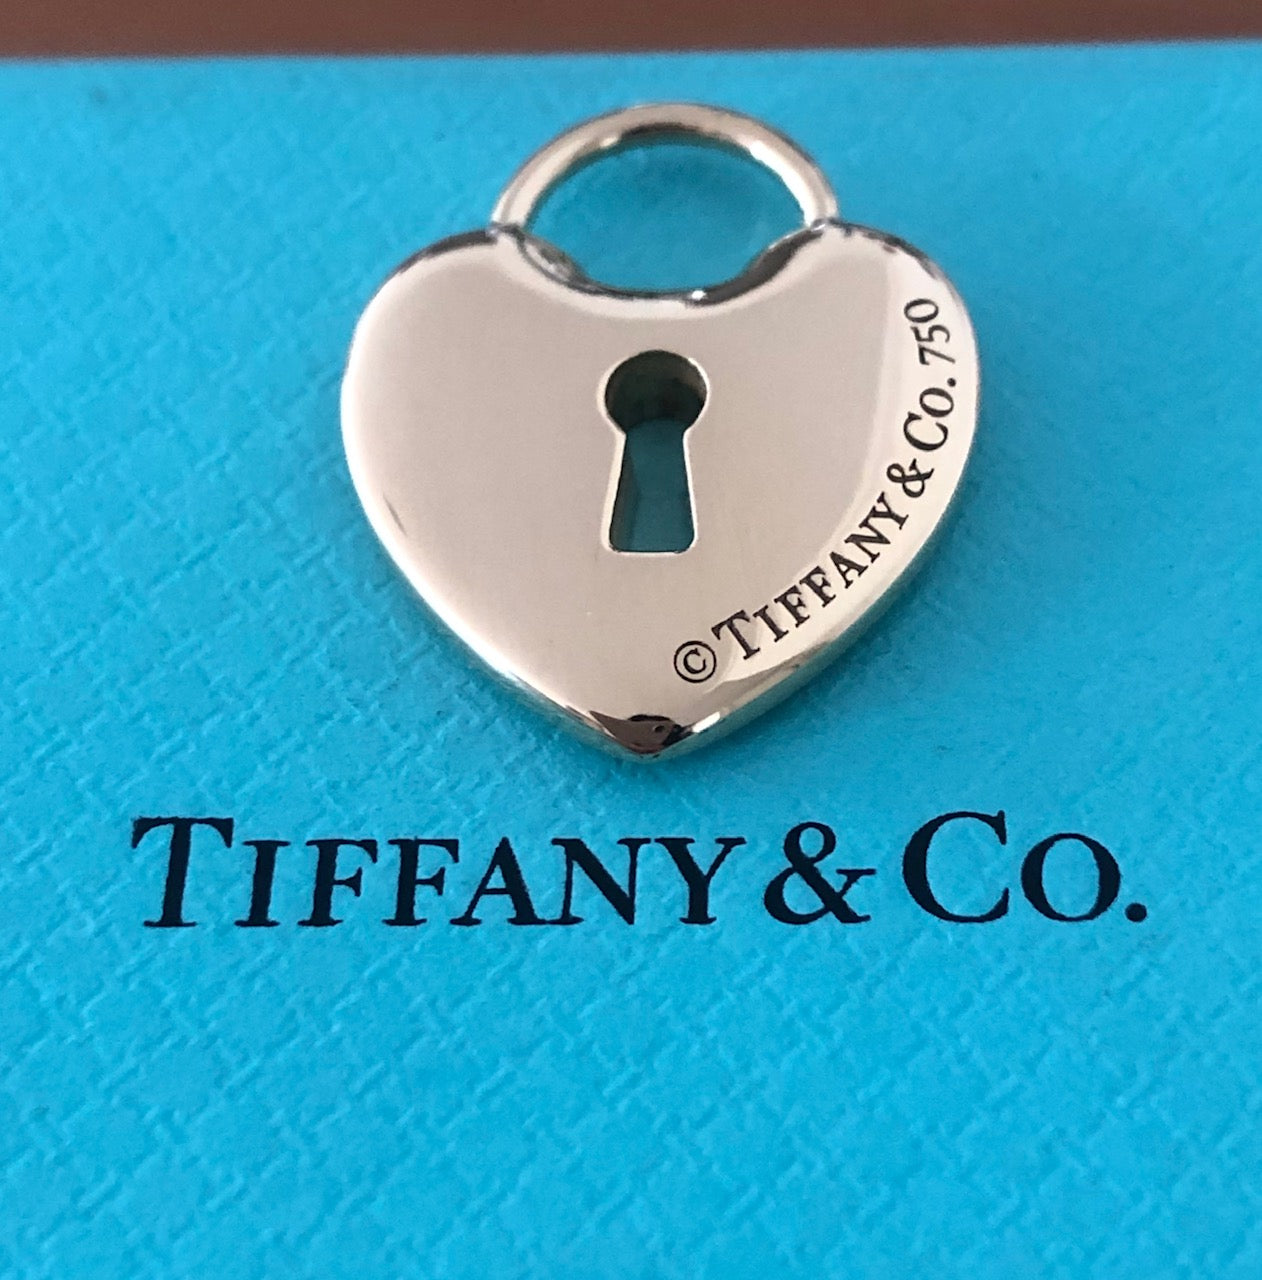 Tiffany & Co. Vintage 18ct Yellow Gold Large Heart Lock Pendant 24mm x 18mm